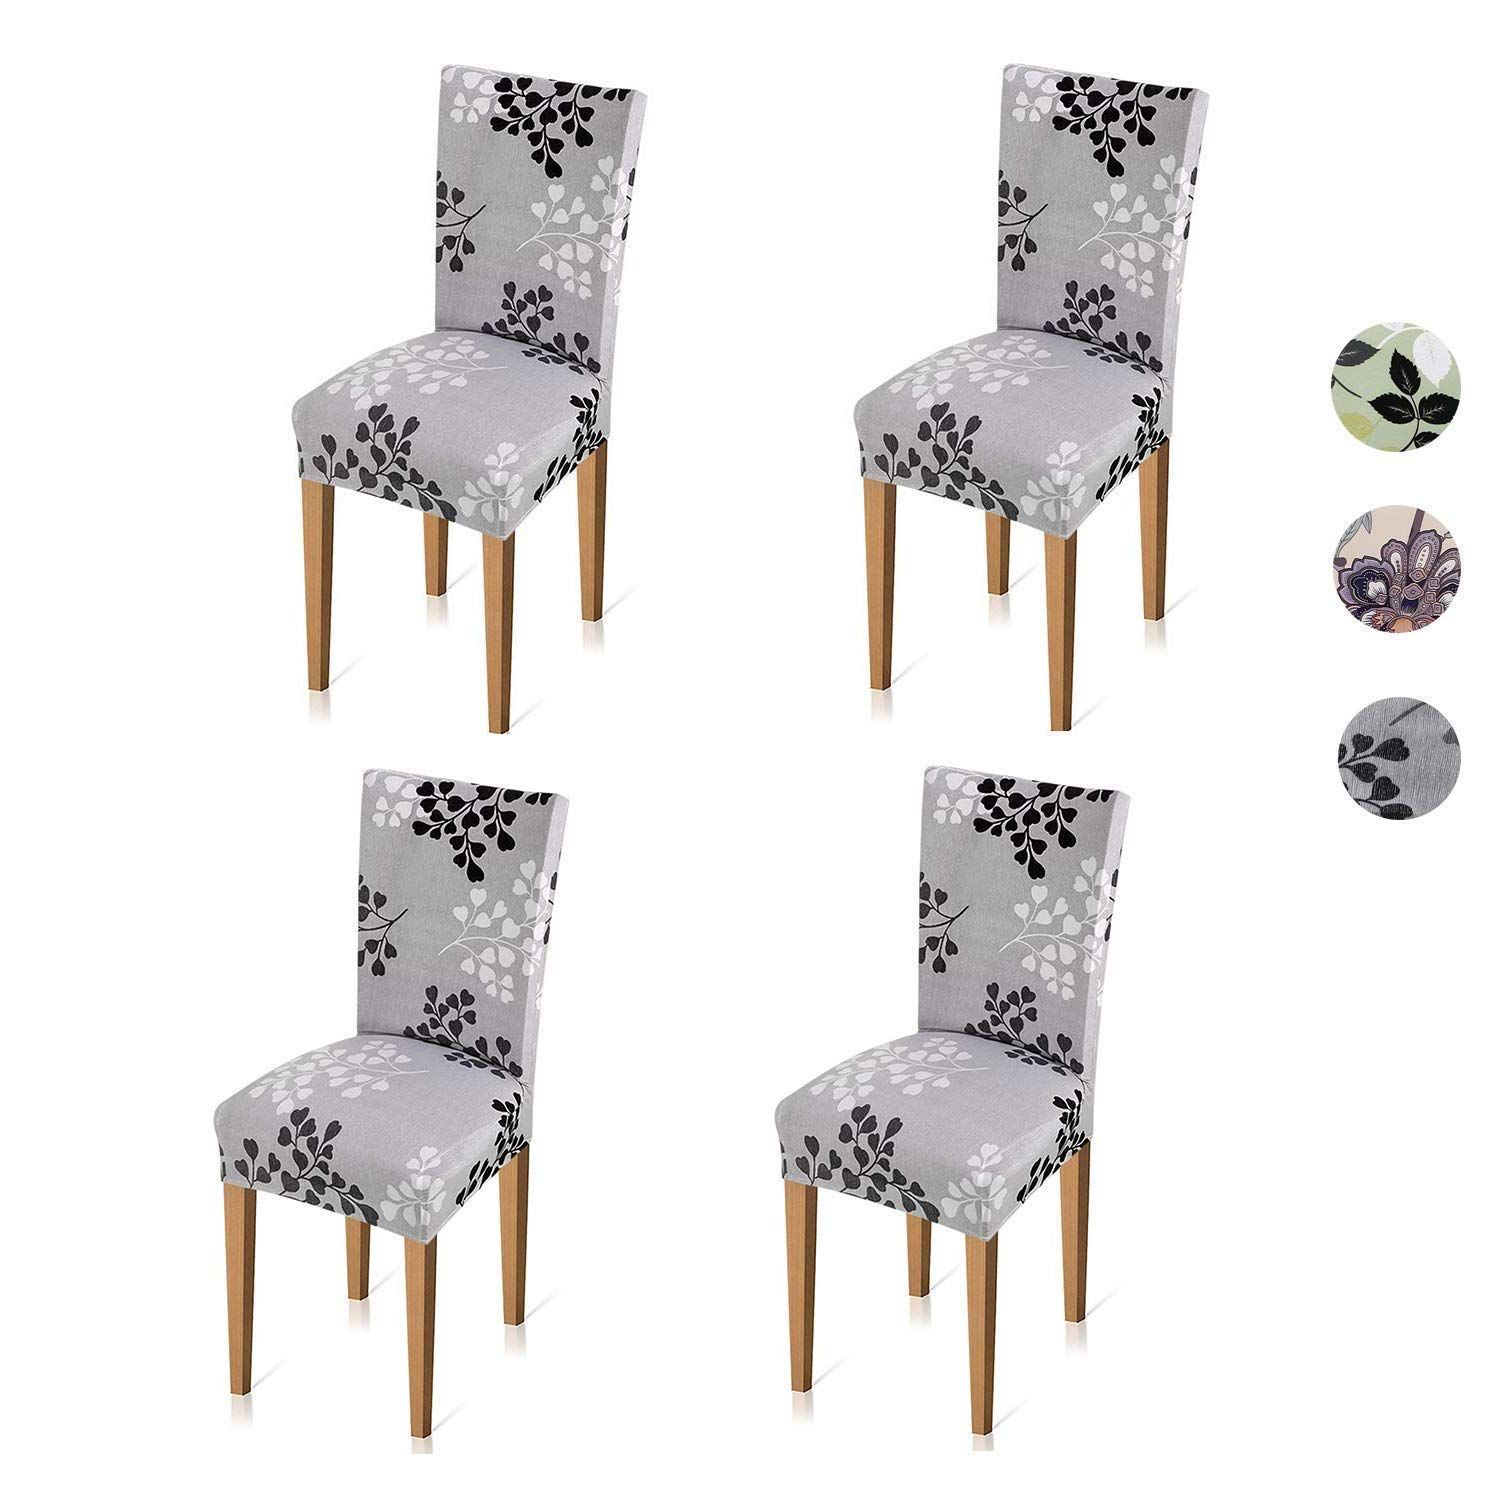 Amazon Stretch Dining Room Chair Covers Just 16 10 16 23 W Code Reg 26 99 As Of 10 12 2018 11 38 Am Cdt Deals Finders Slipcovers For Chairs Dining Room Chair Covers Dining Room Chair Slipcovers